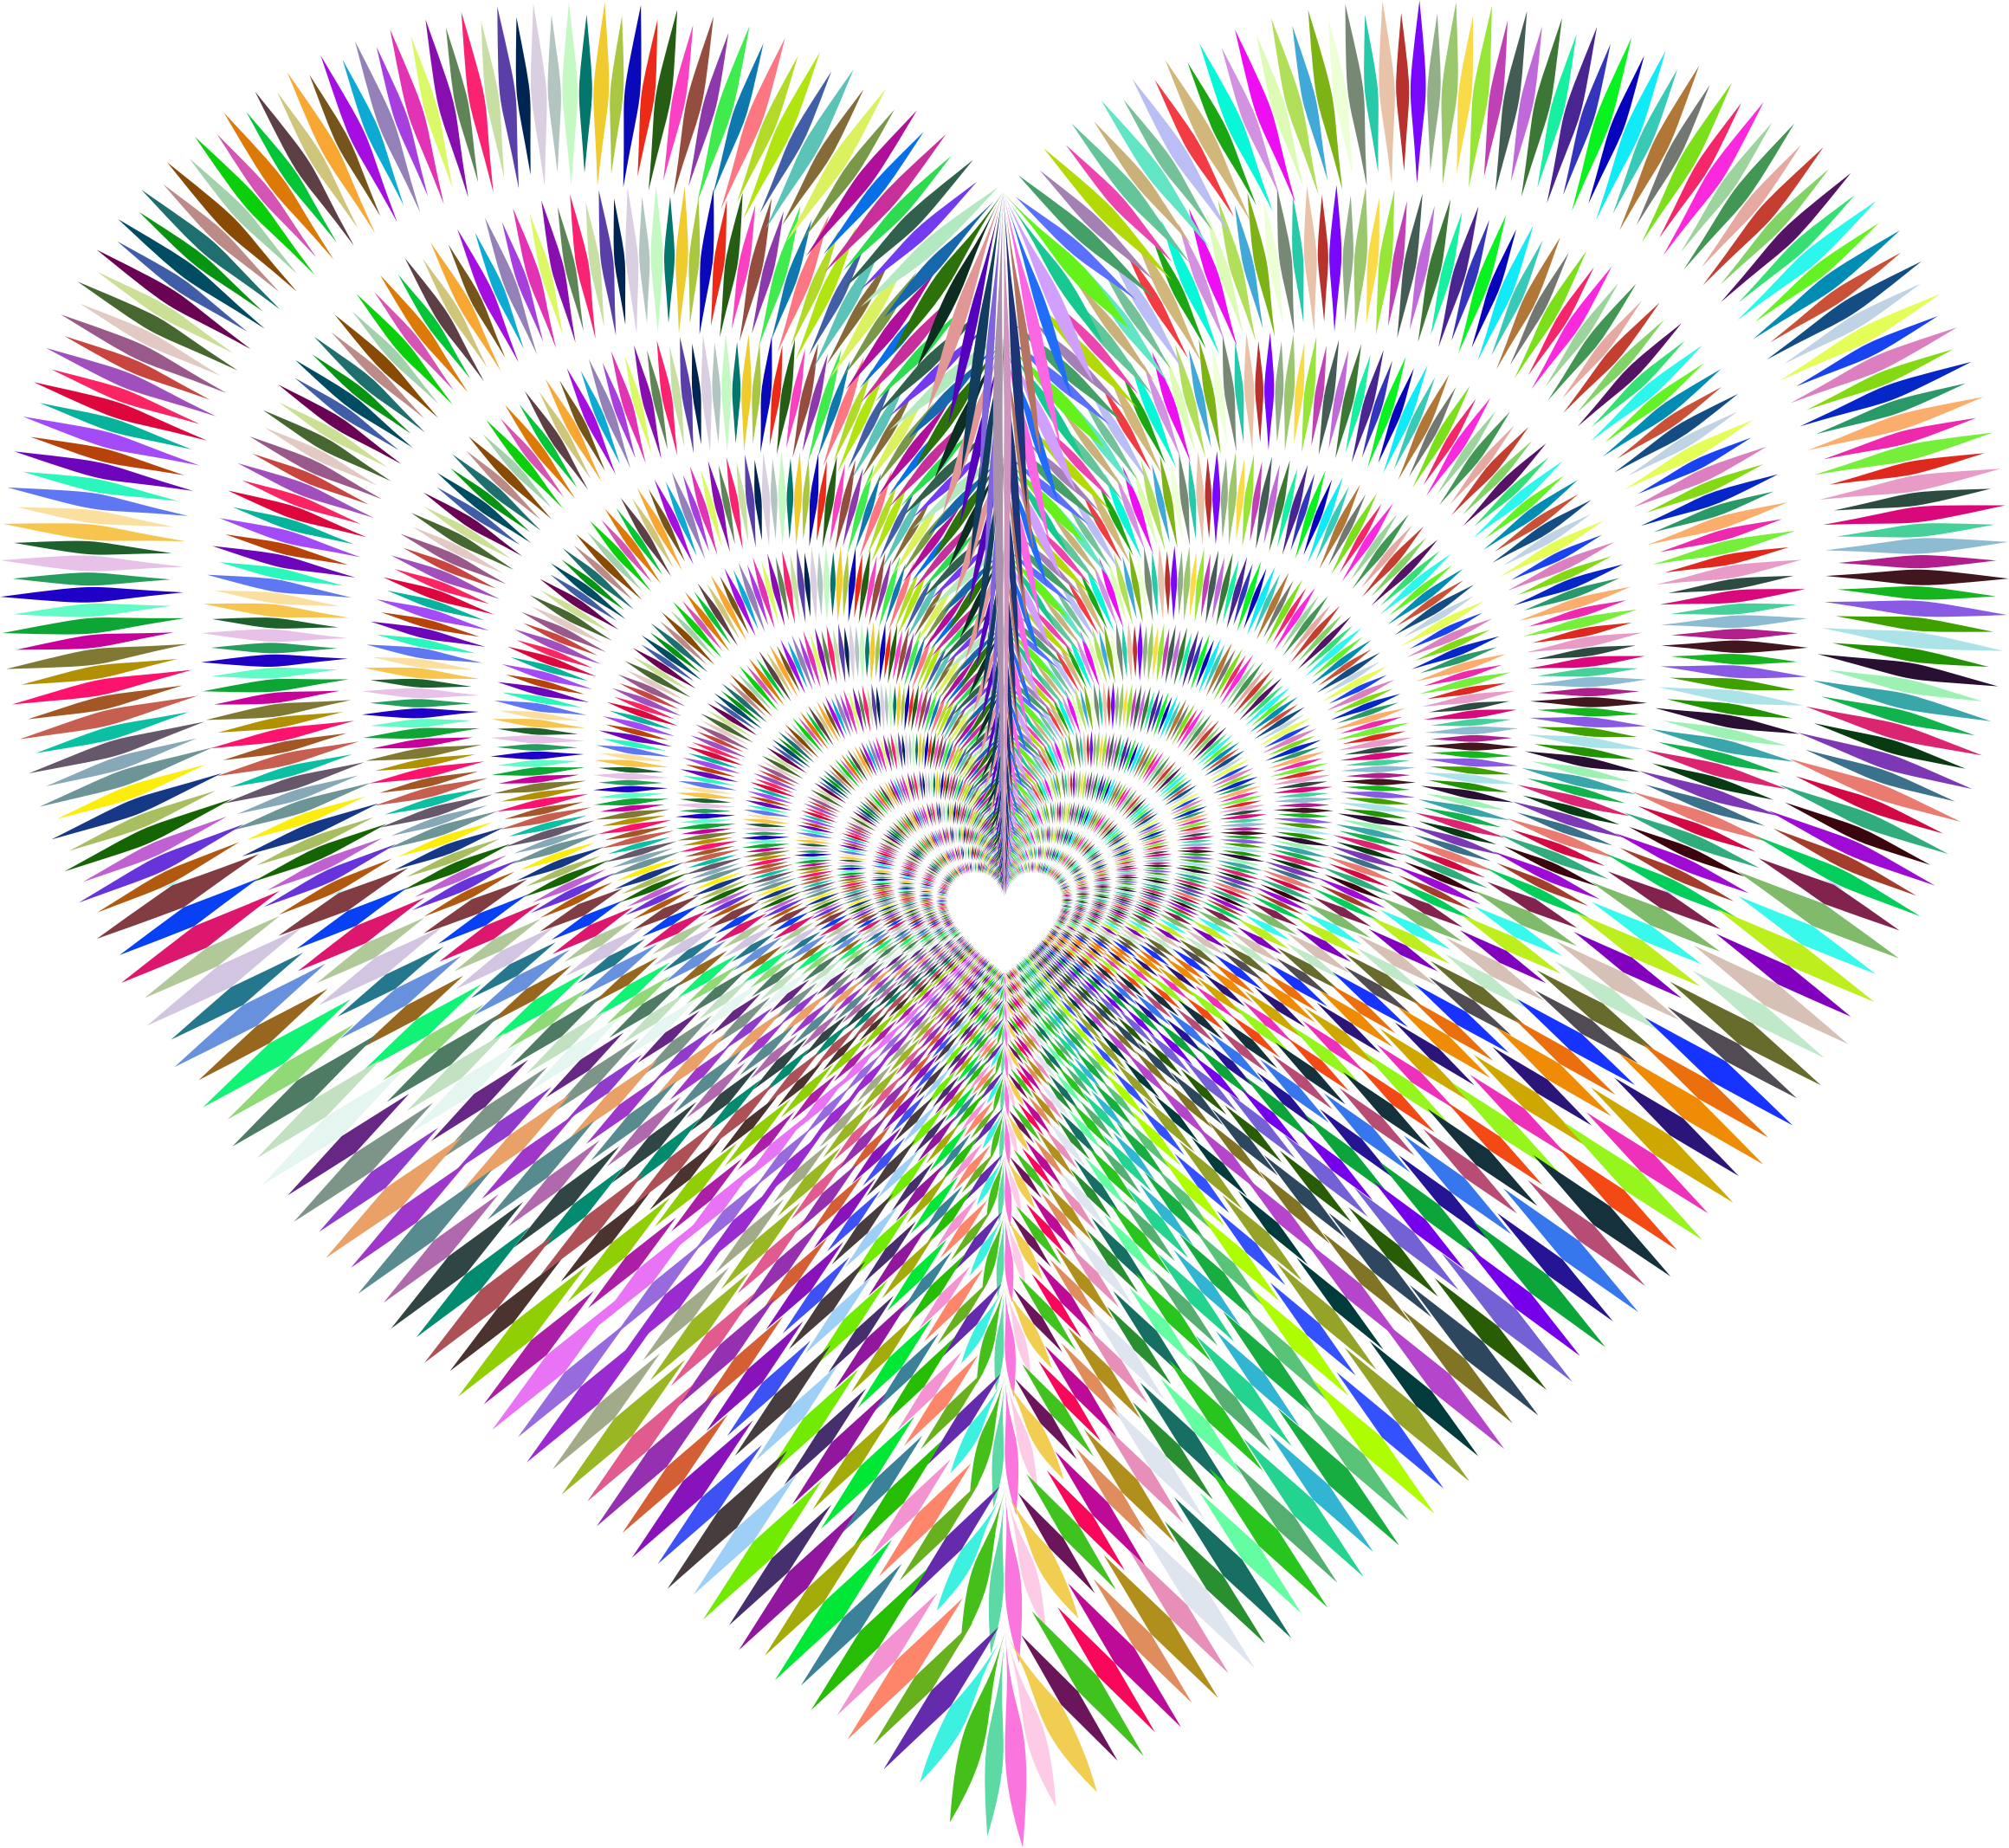 Prismatic Sharp Spiky Heart Tunnel by GDJ